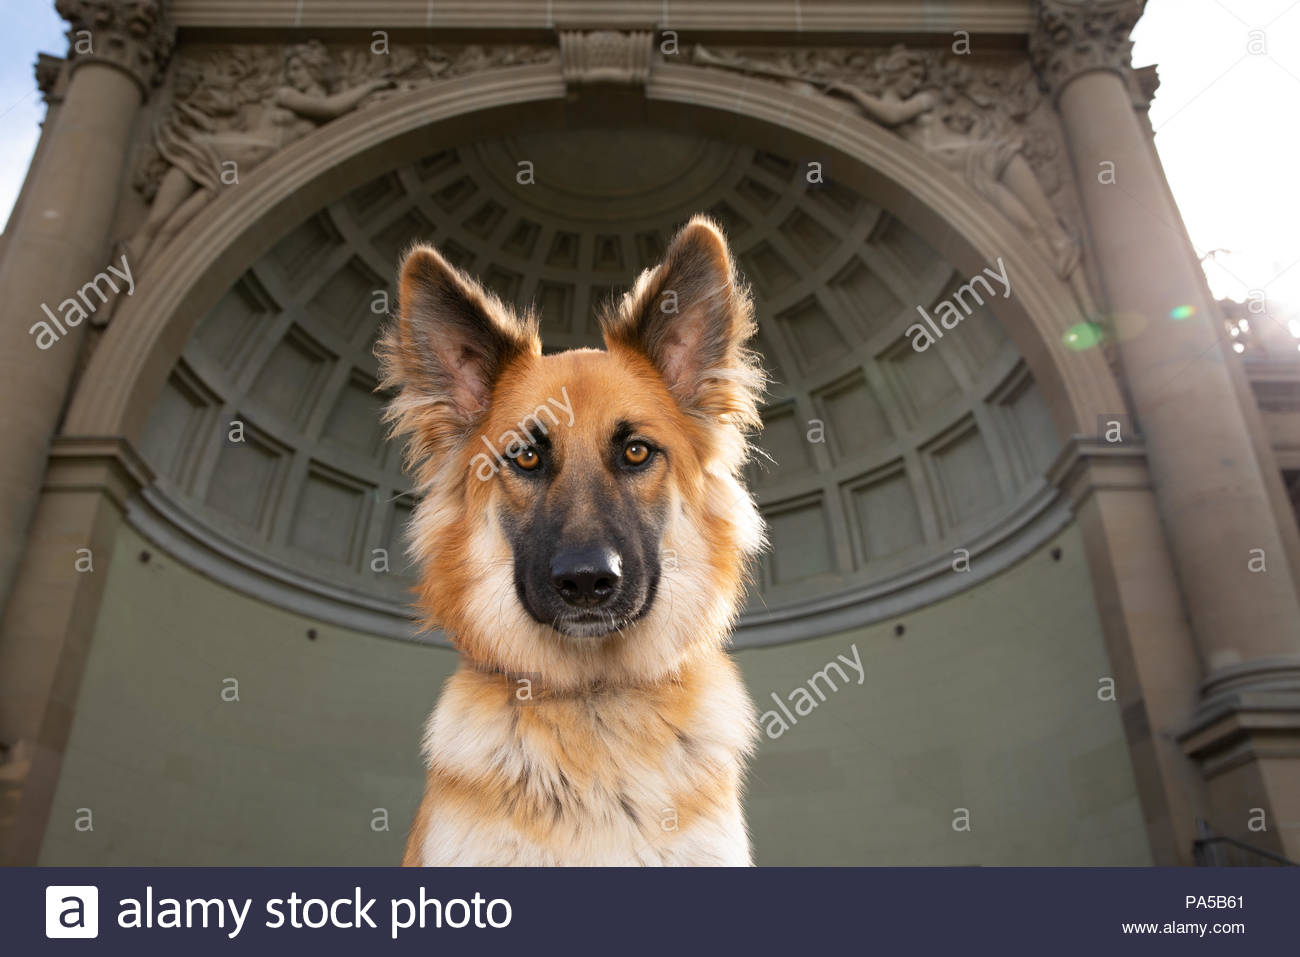 Close-up of brownish red german shepherd mix dog with big ears and brown eyes in front of a coffered bandshell structure - Stock Image